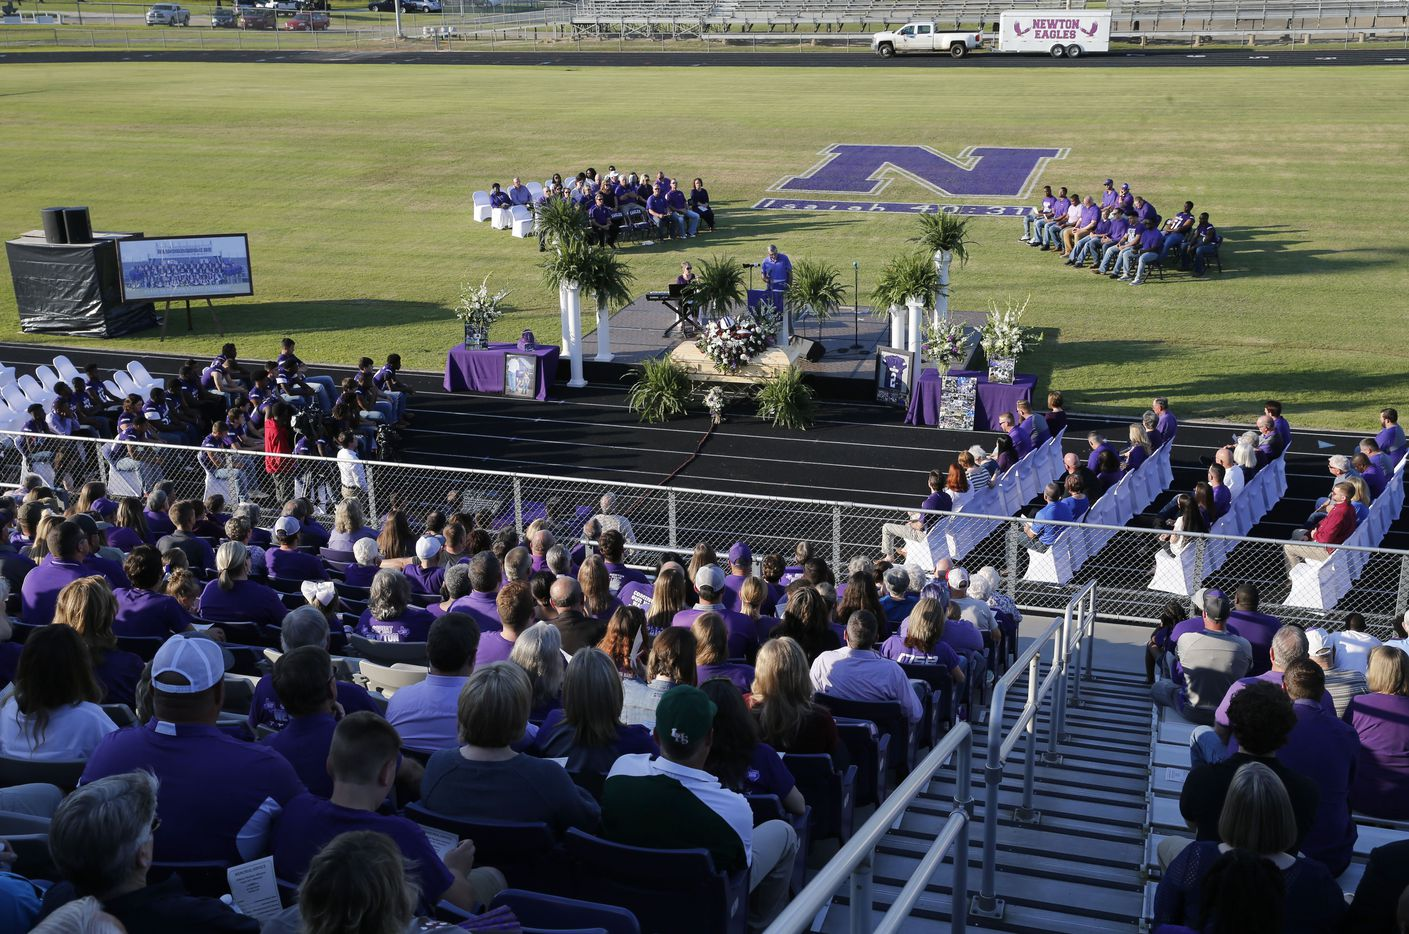 """People in attendance during the memorial service for Newton High School head football coach William Theodore """"W.T."""" Johnston at Curtis Barbay Field at Newton High School in Newton, Texas on Wednesday, May 15, 2019. (Vernon Bryant/The Dallas Morning News)"""